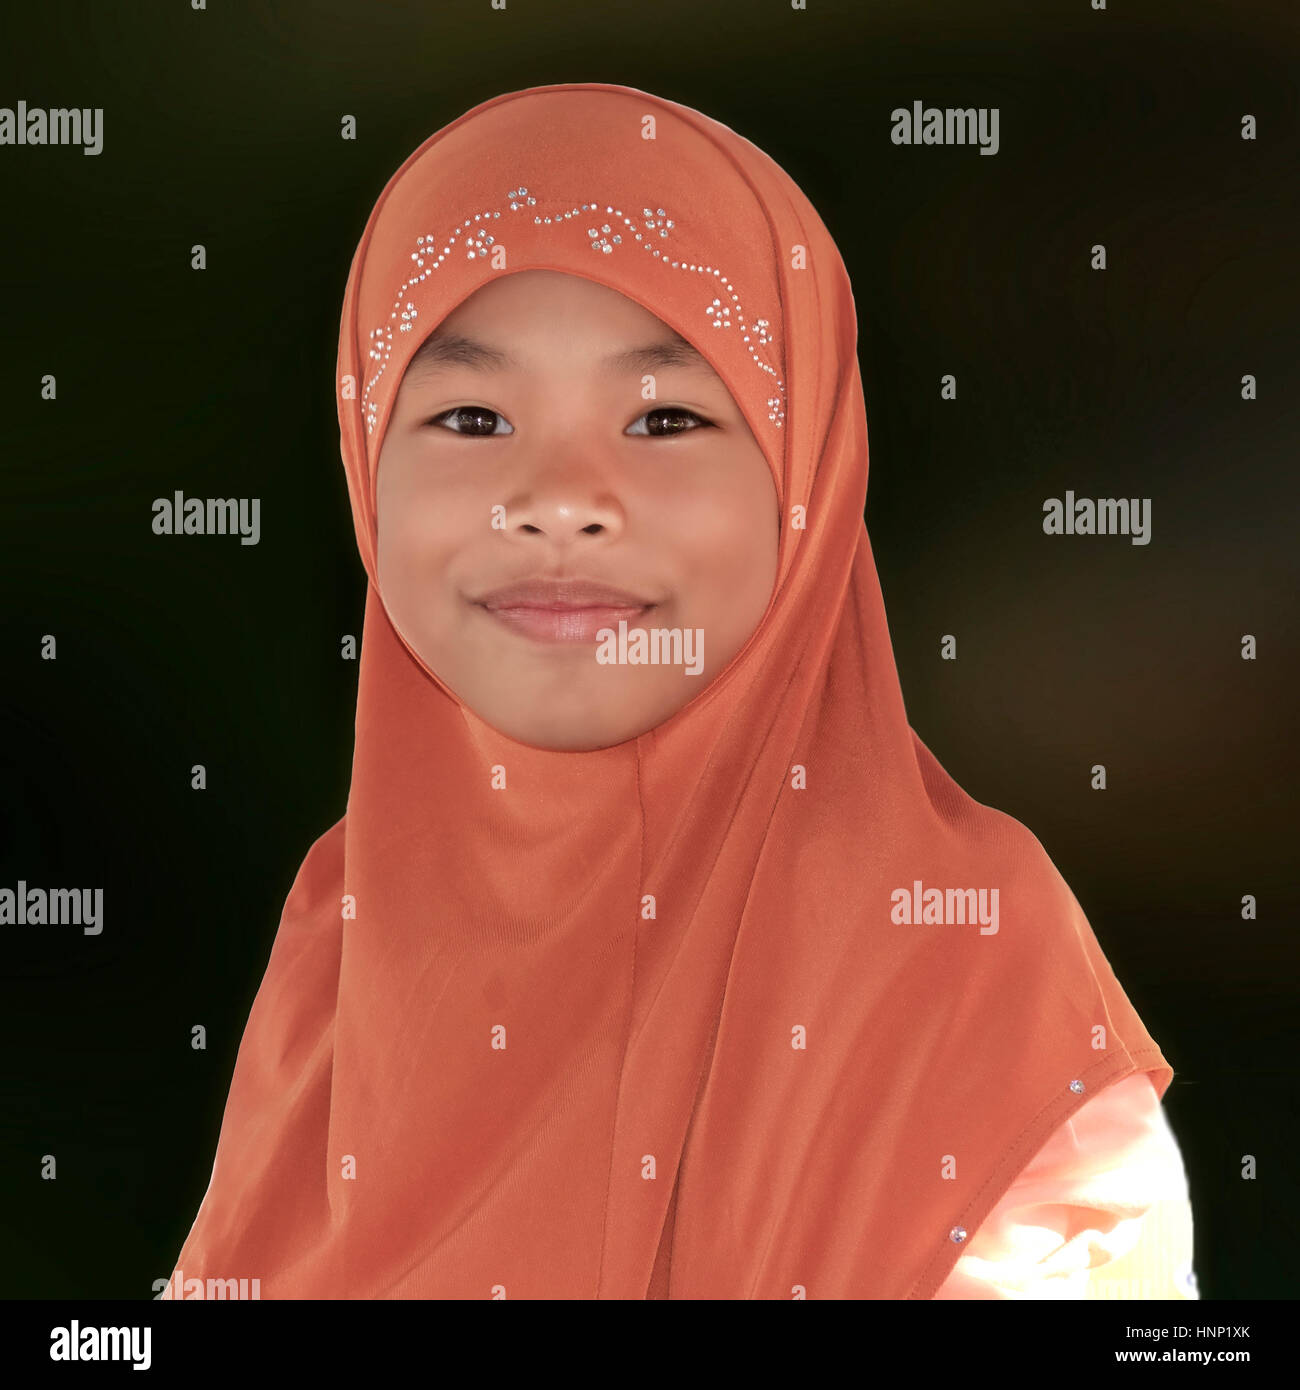 Portrait of a young Muslim child wearing a hijab. Girl Khimar. Plain background. Thailand people, Southeast Asia - Stock Image